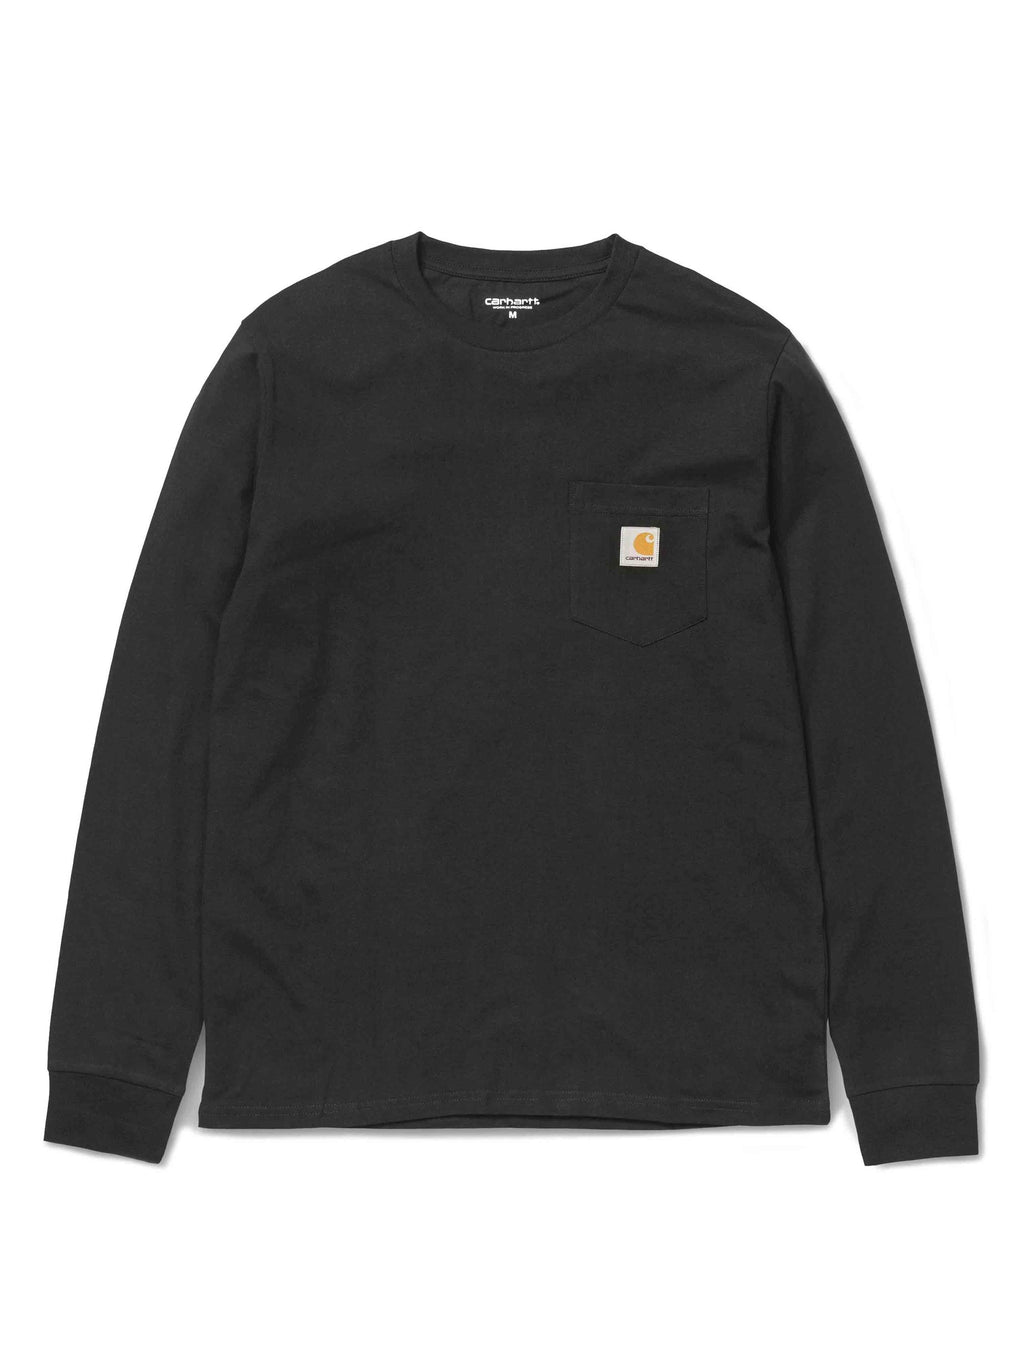 Carhartt Pocket Long Sleeve Tee Black - PRIOR